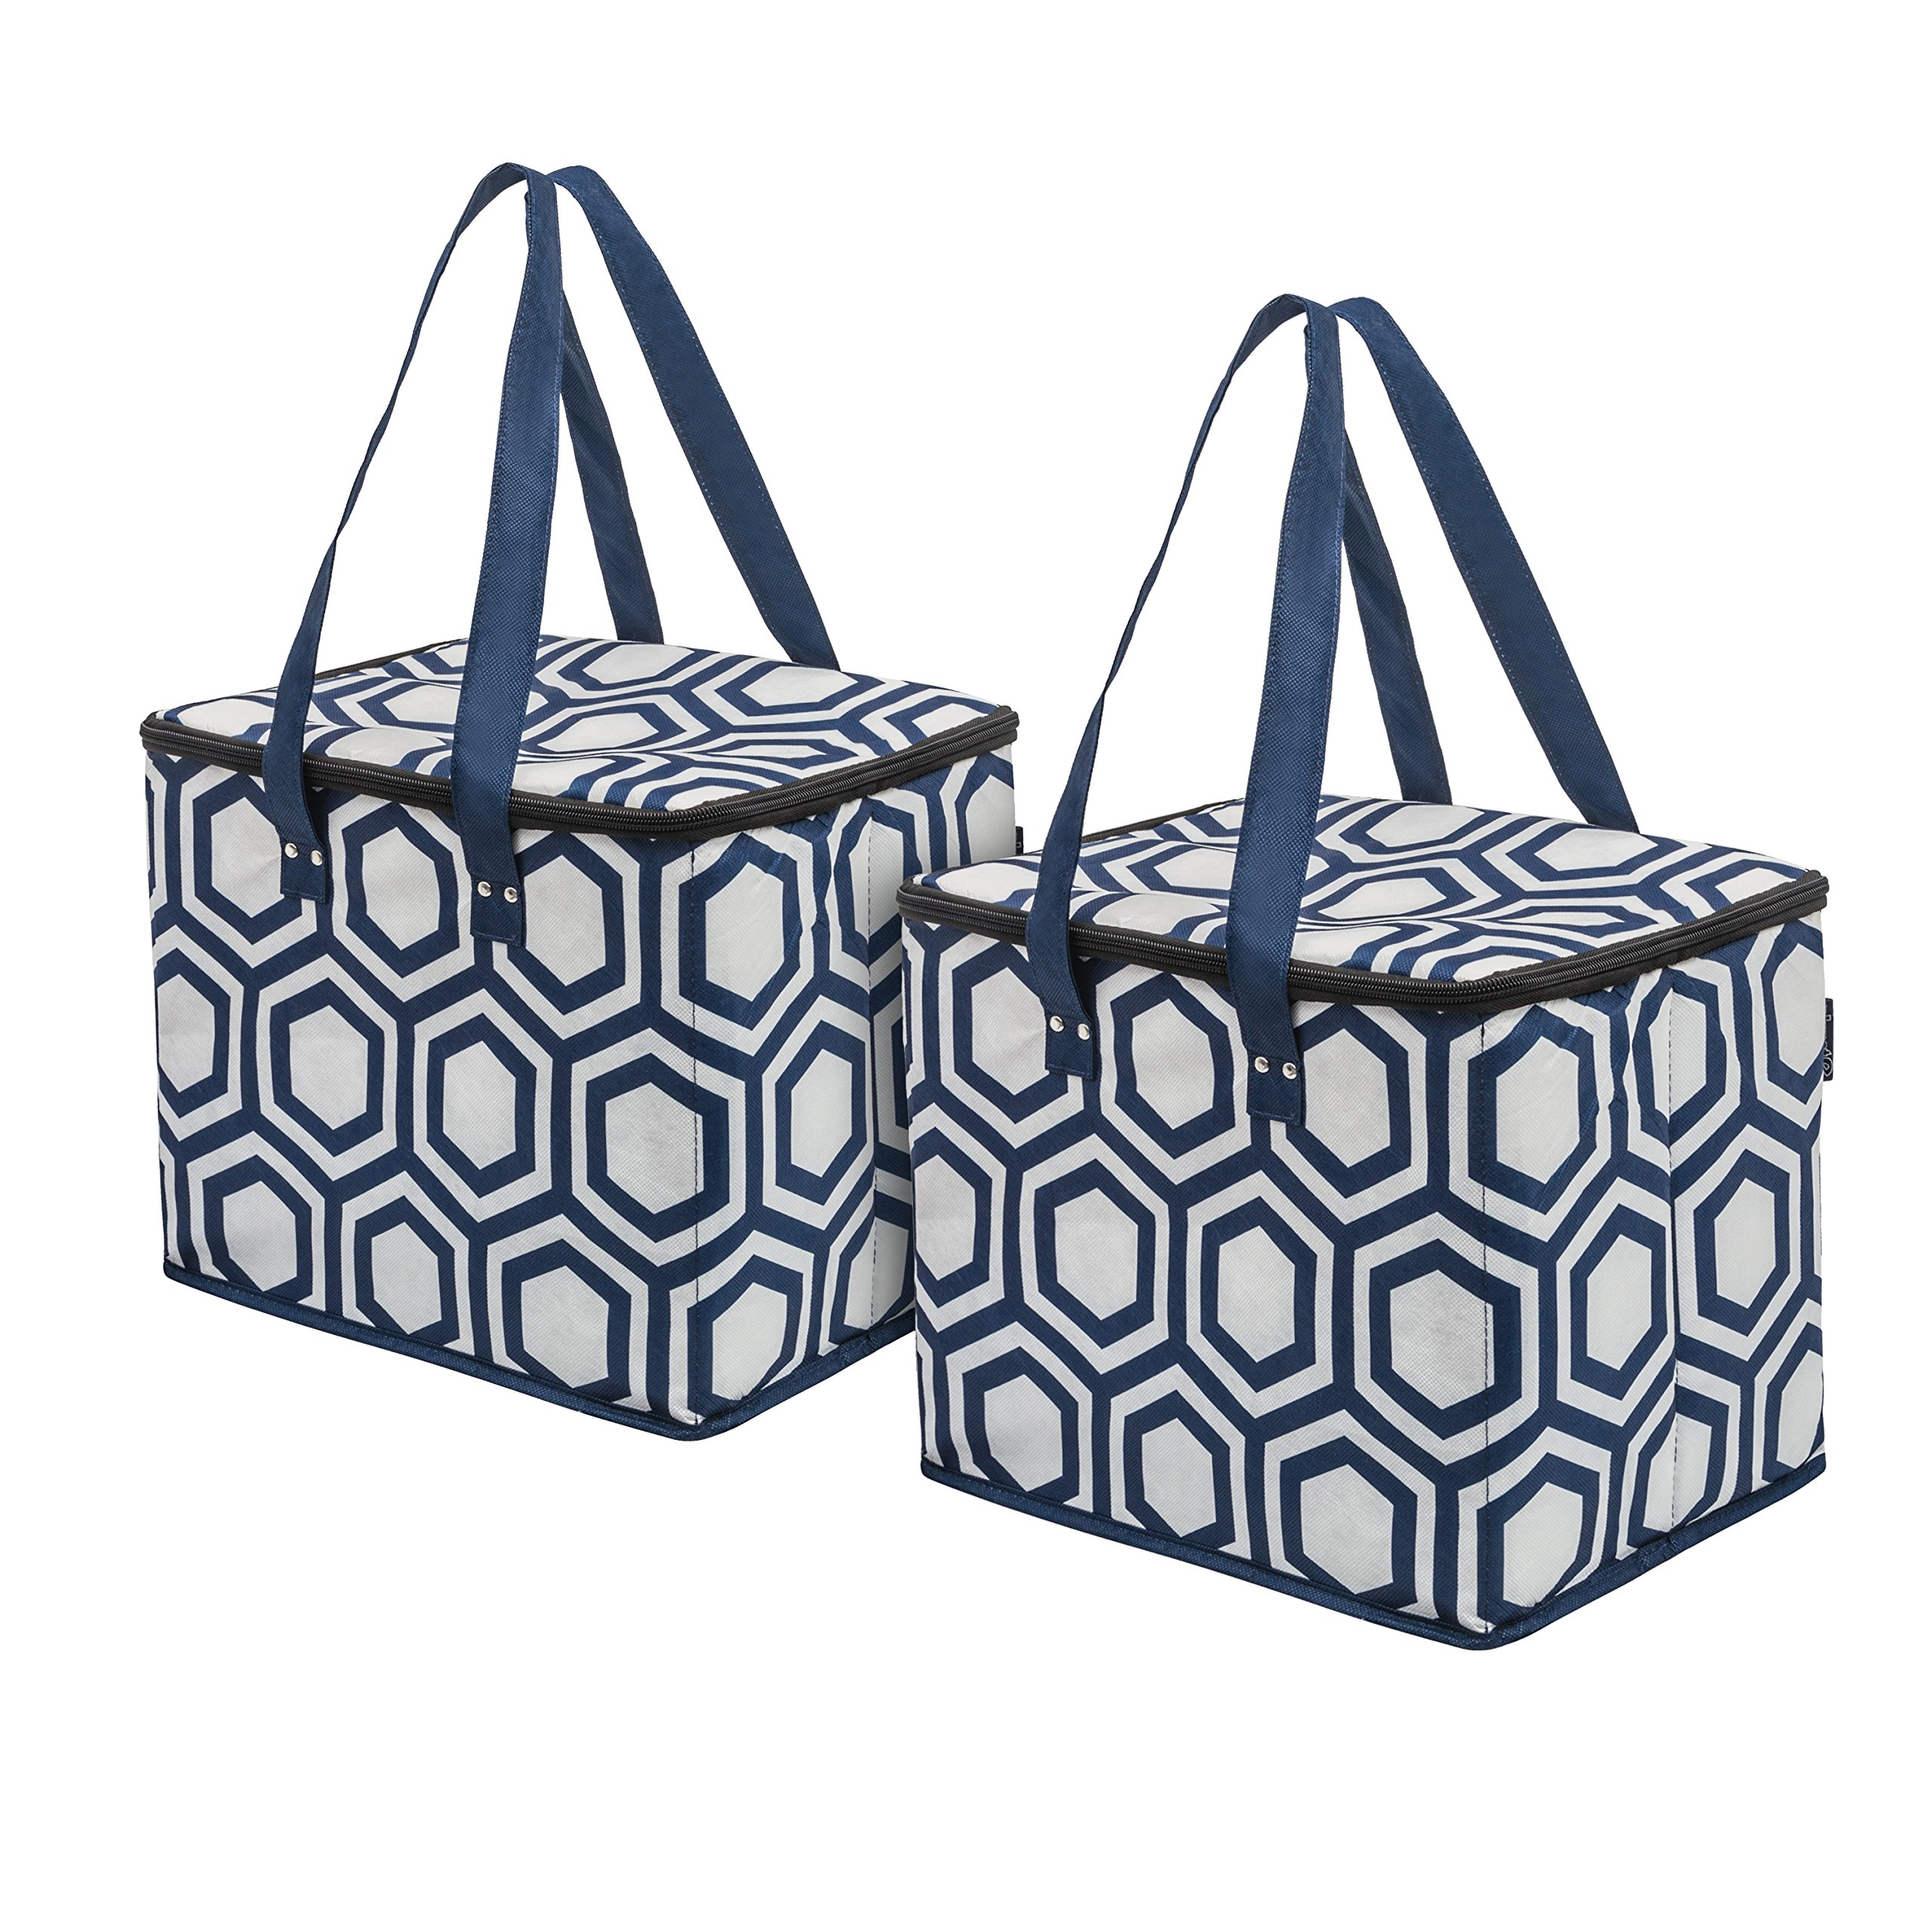 Planet E Reusable Grocery Shopping Bags – Large Collapsible Insulated zippered Coolers with Reinforced Bottom Made of Recycled Plastic (Pack of 2)